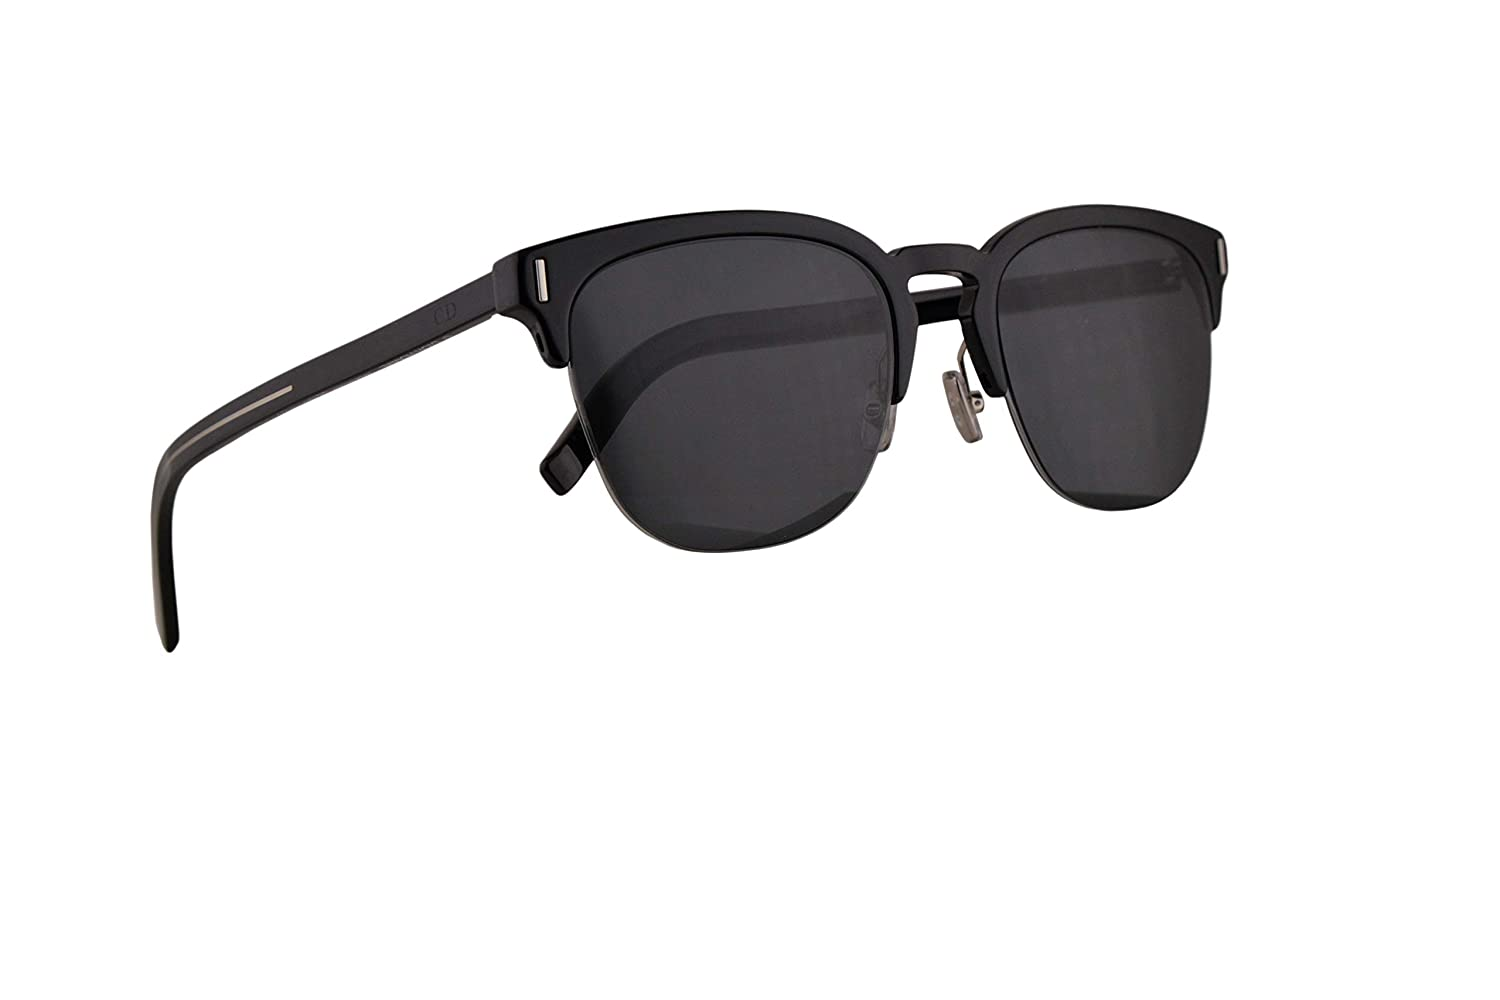 Amazon.com: Christian Dior Homme DiorFraction6F Sunglasses ...